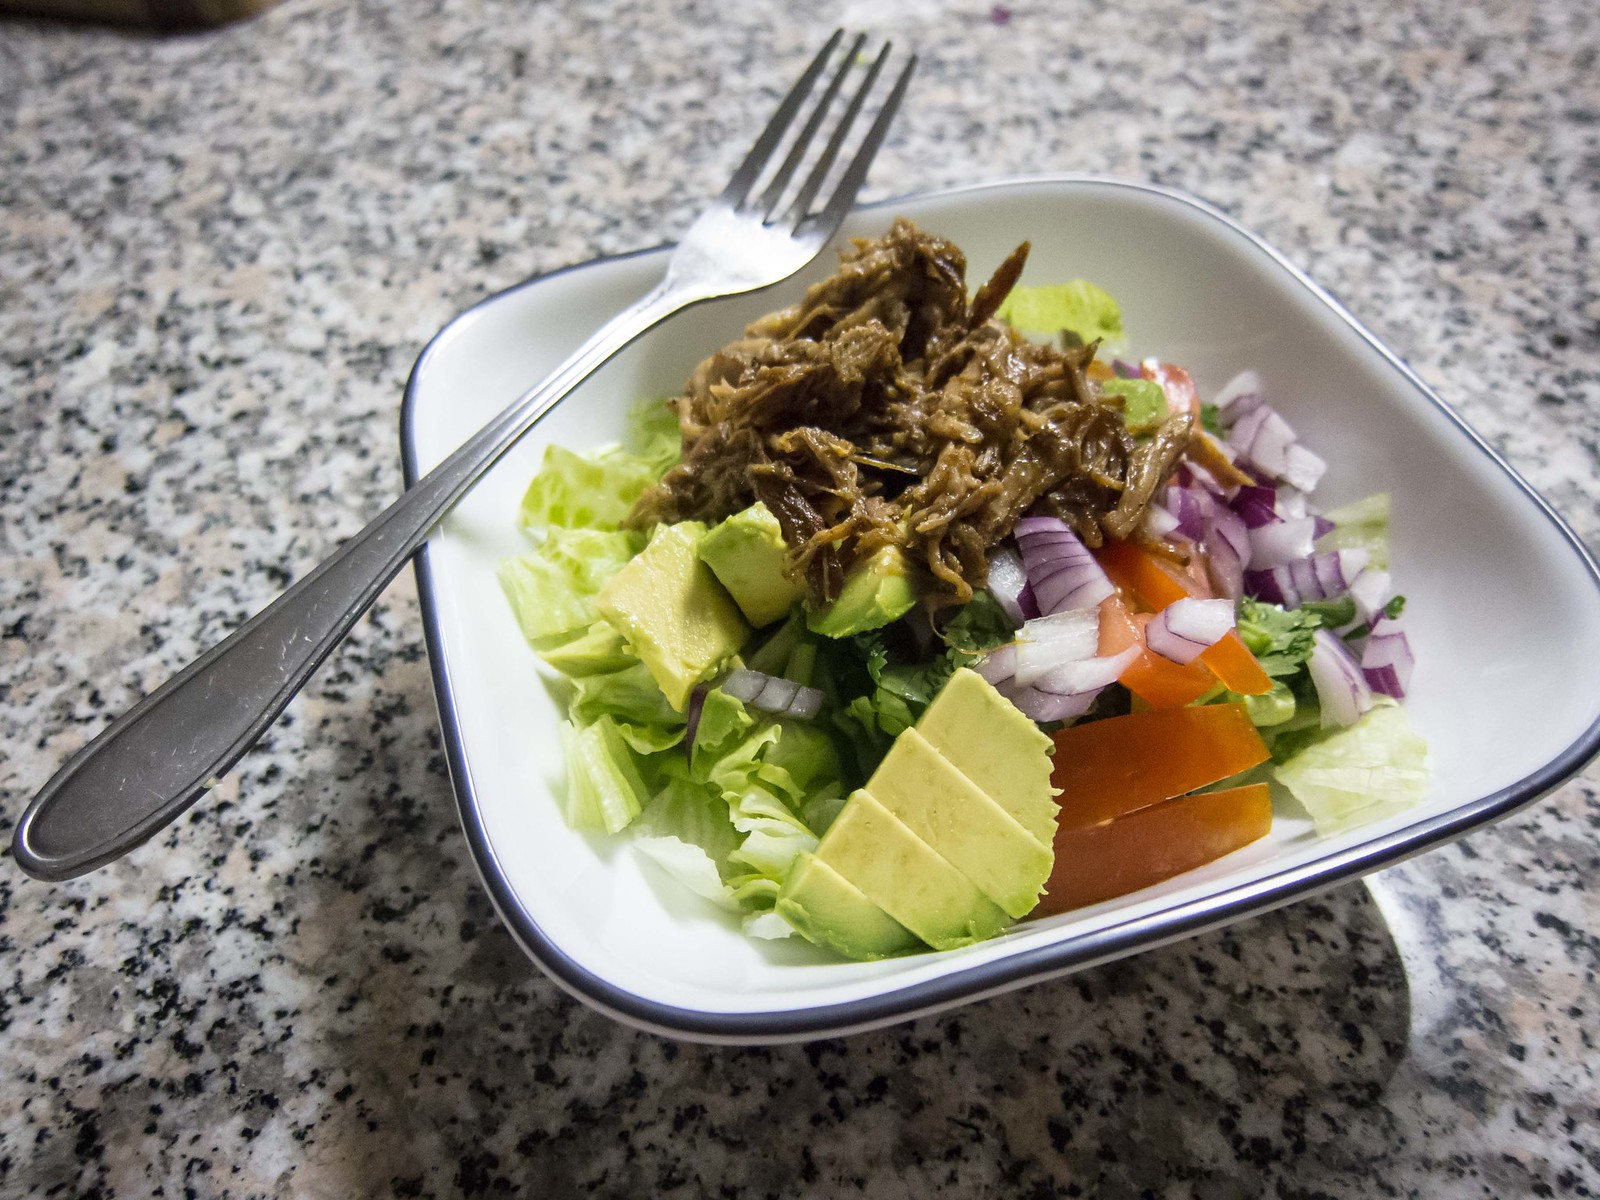 Pulled pork is an essential slow cooker recipe. While most pulled pork ...